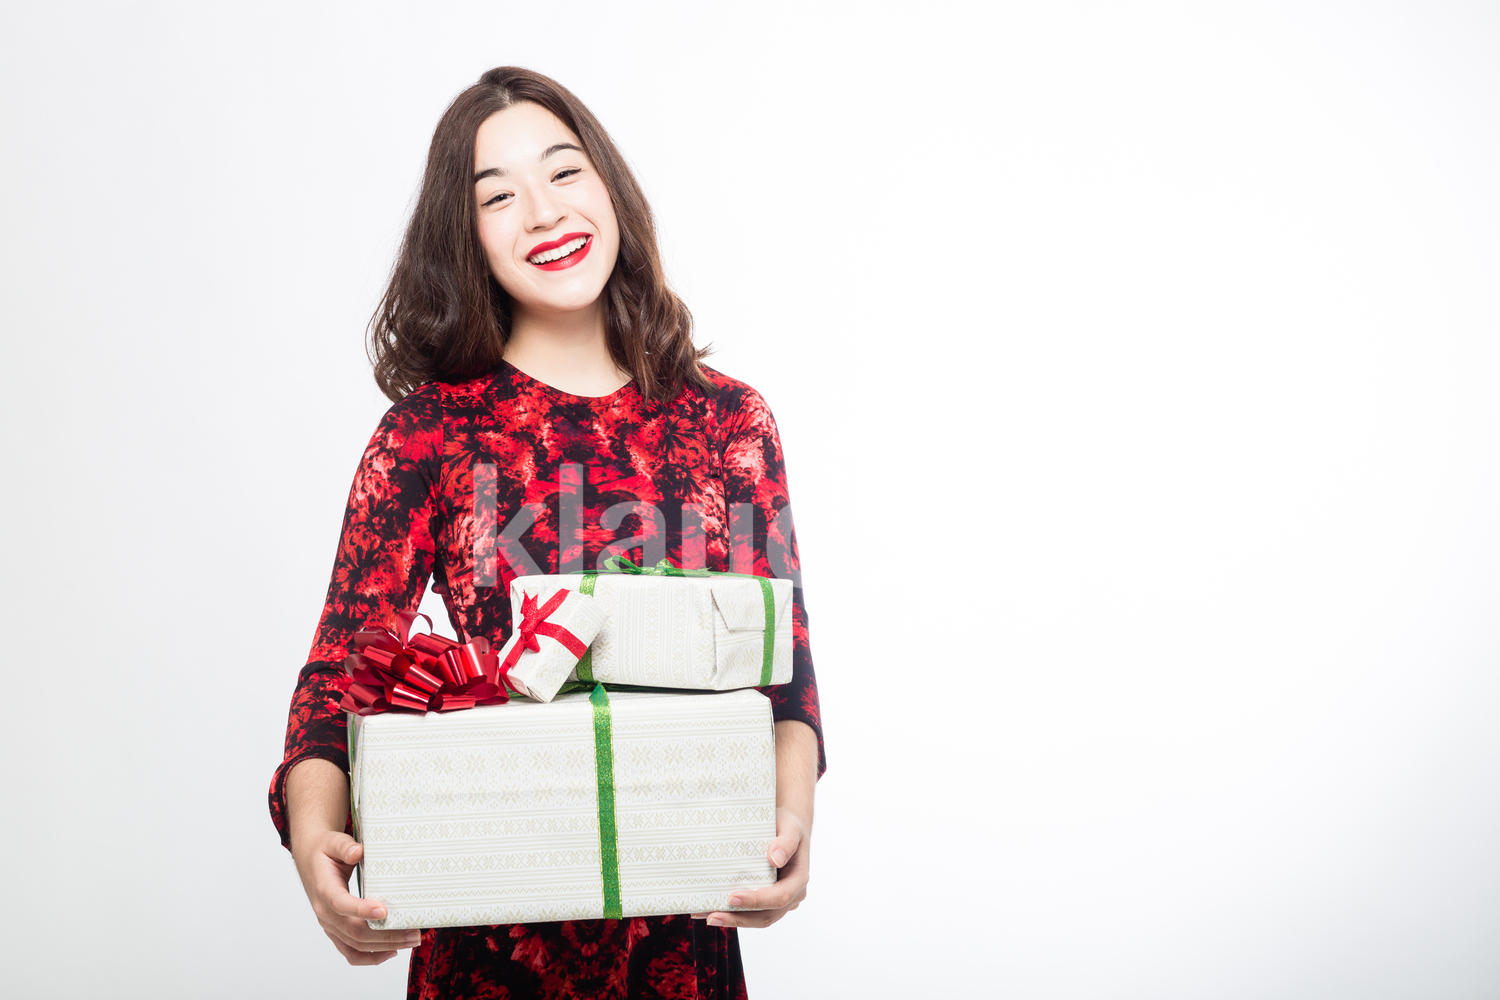 Eurasian Woman with her Christmas Boxes